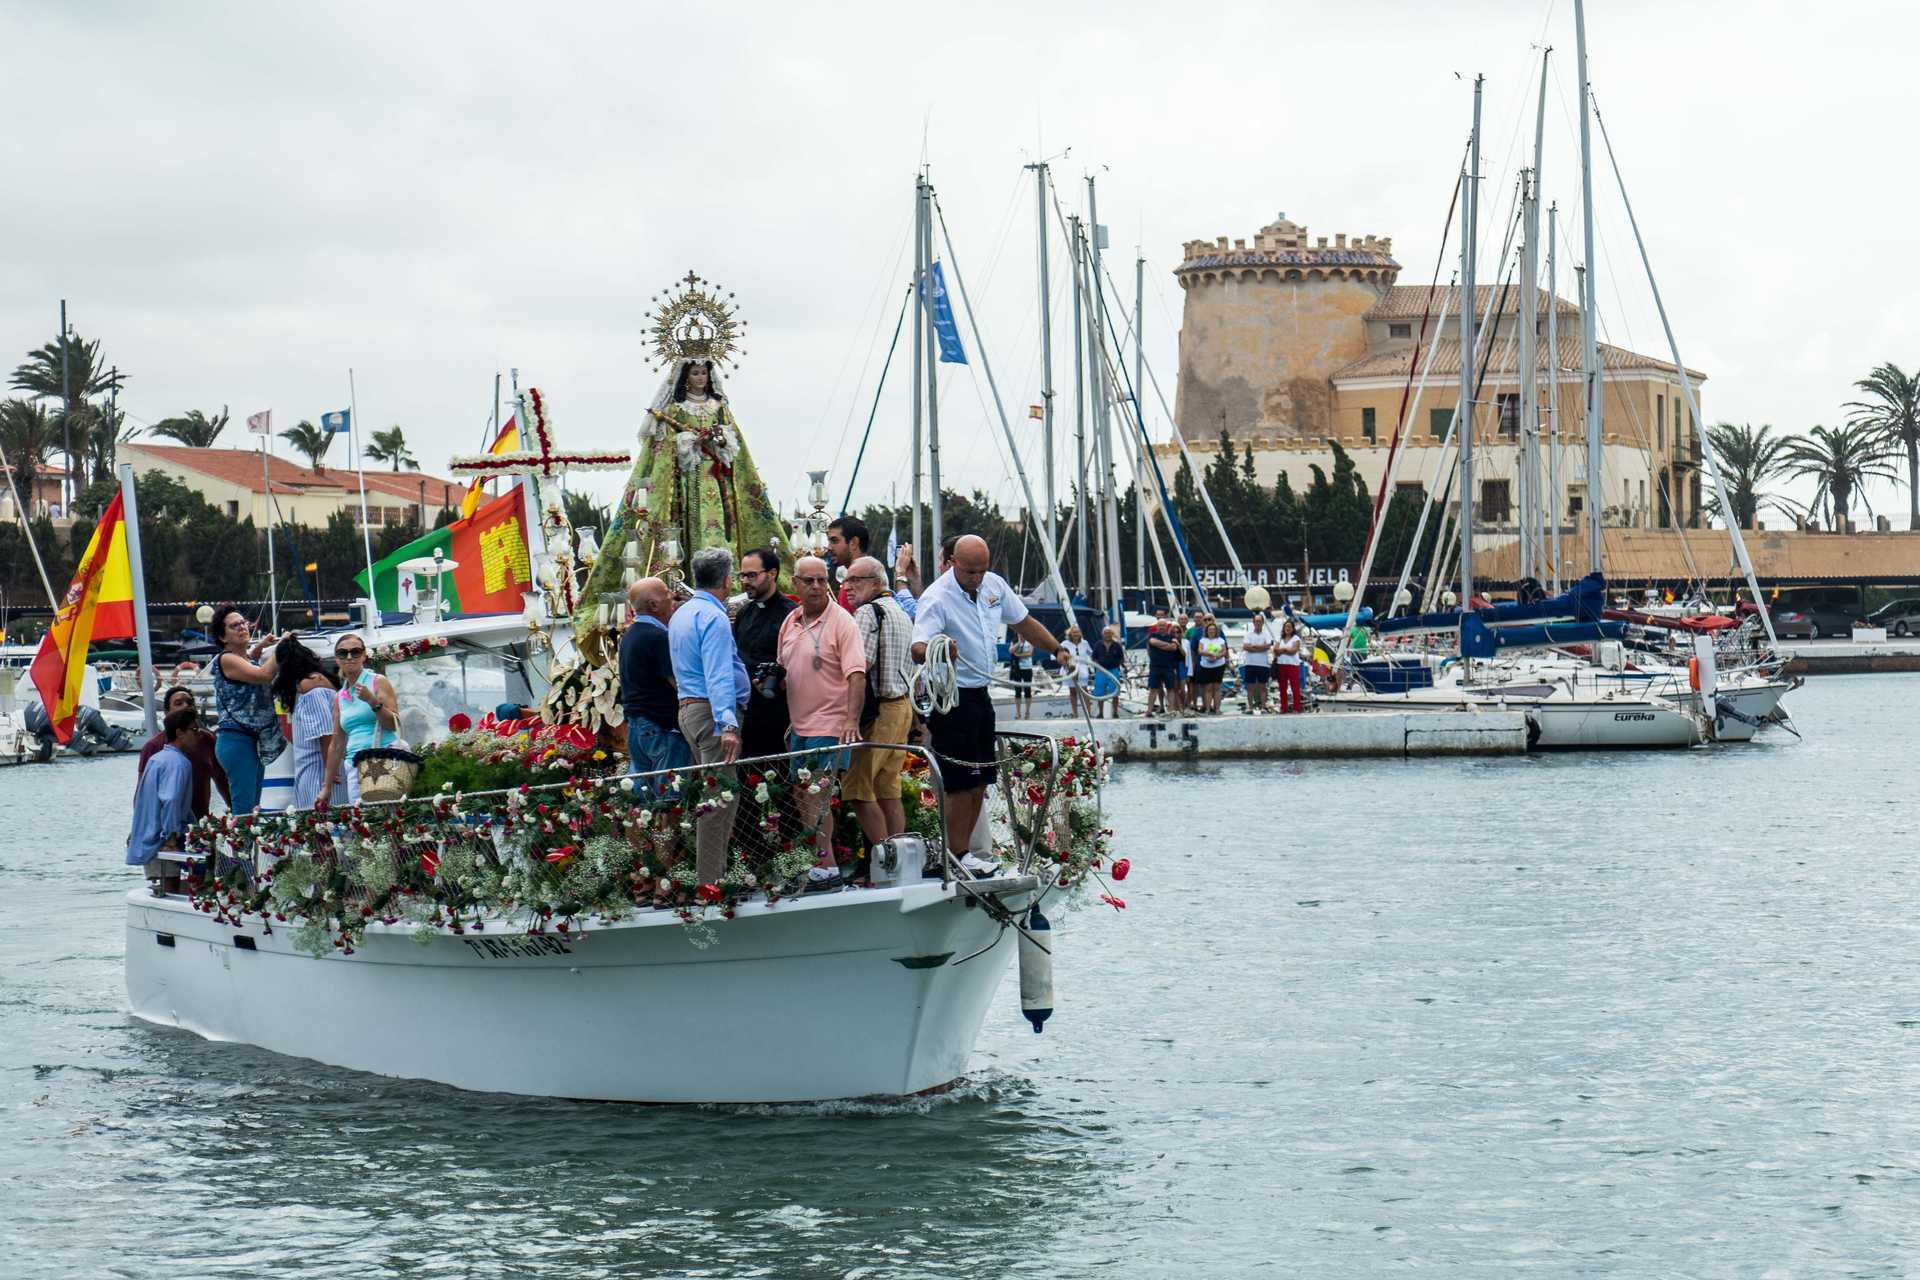 FESTIVITIES IN HONOUR OF VIRGEN DE LA ASUNCIÓN IN TORRE DE LA HORADADA